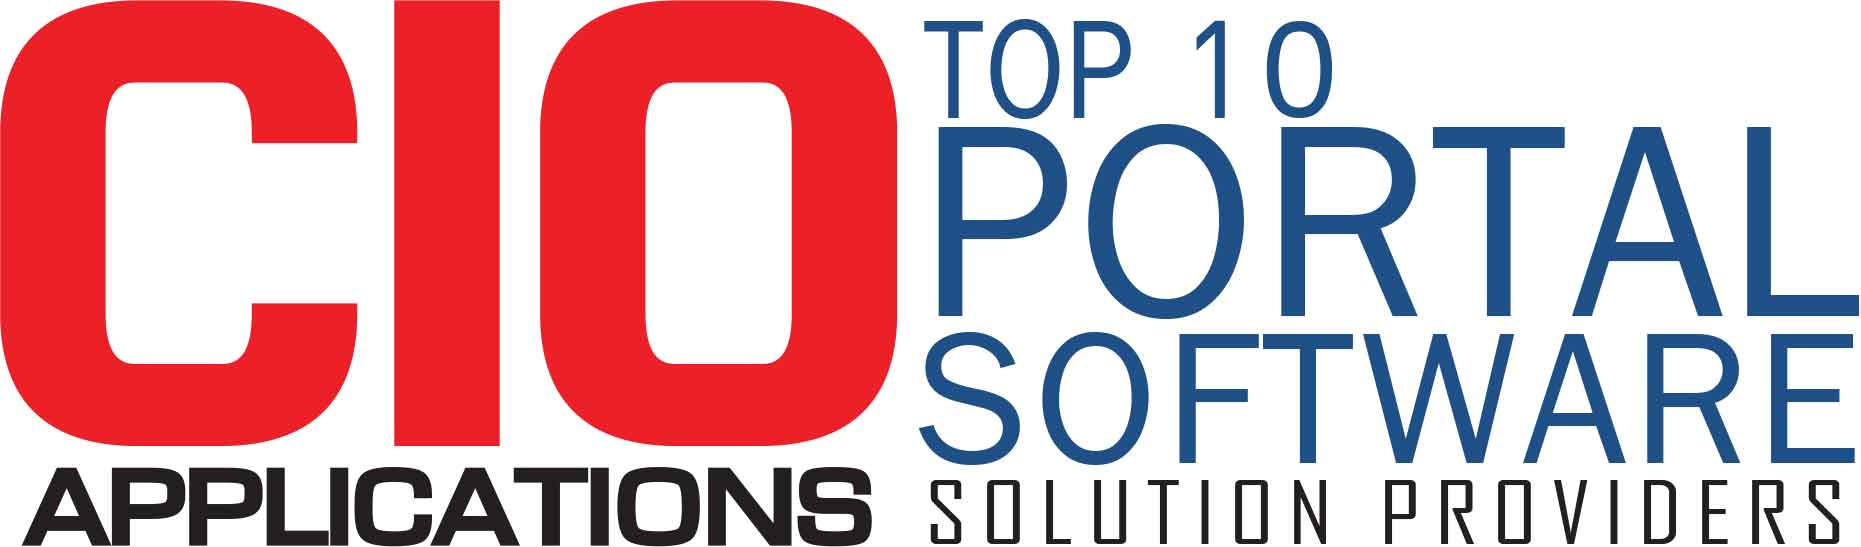 Top 10 Portal Software Solution Companies - 2019